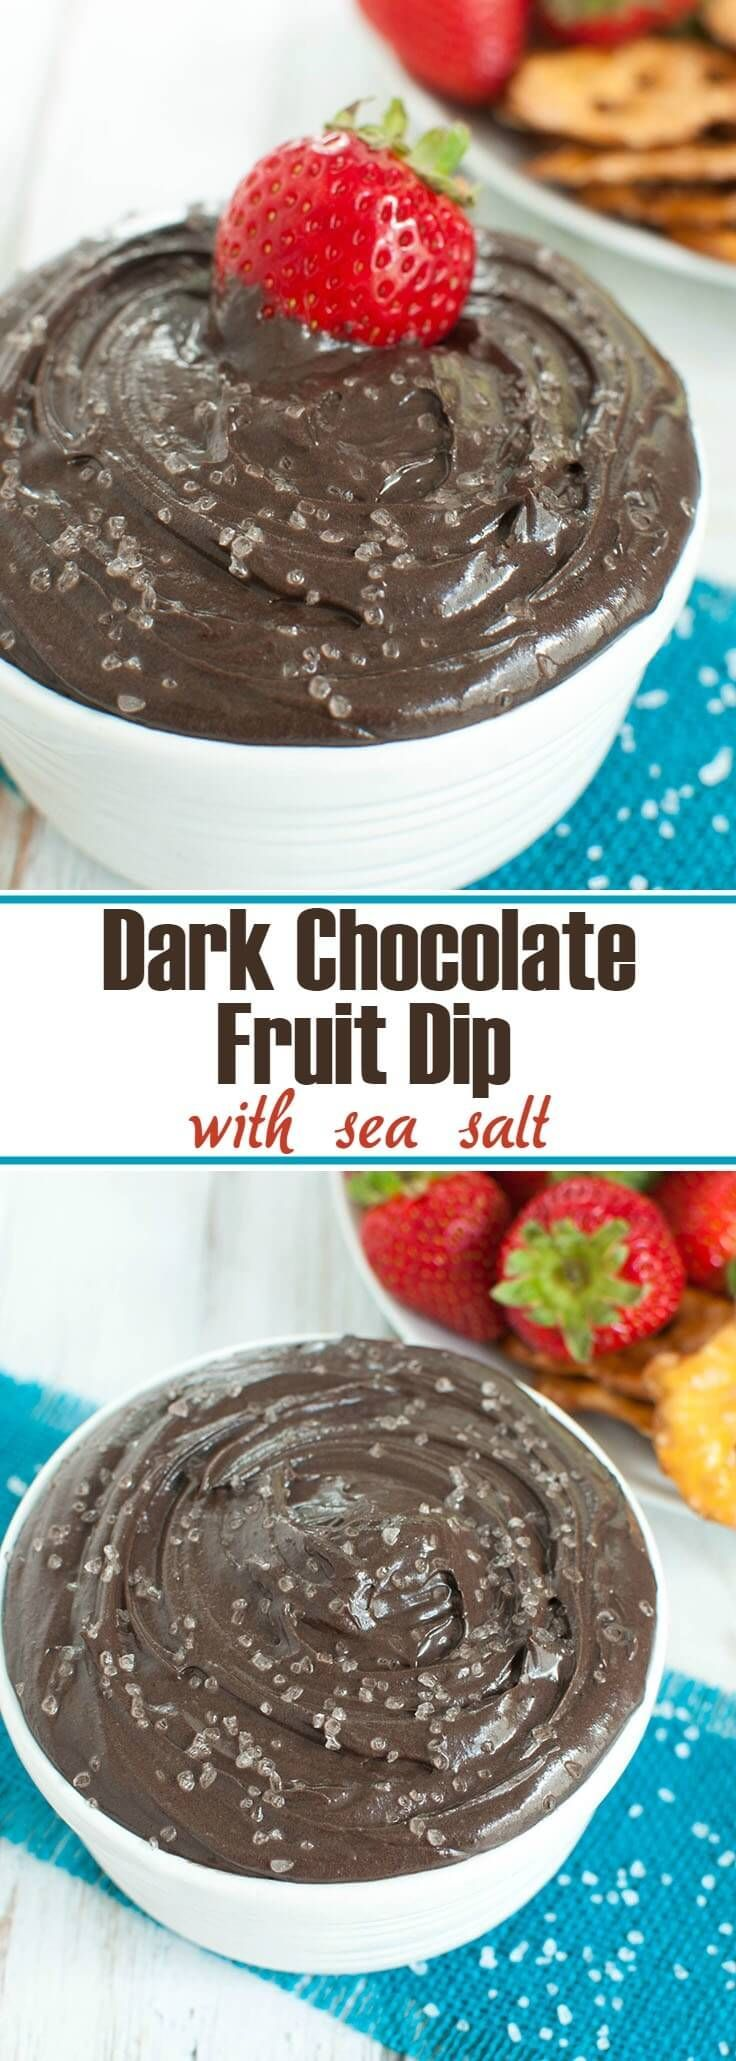 Easy 5 ingredient dessert. A touch of sea salt brings out the rich chocolate in this Dark Chocolate Sea Salt Fruit Dip. Great party dip.